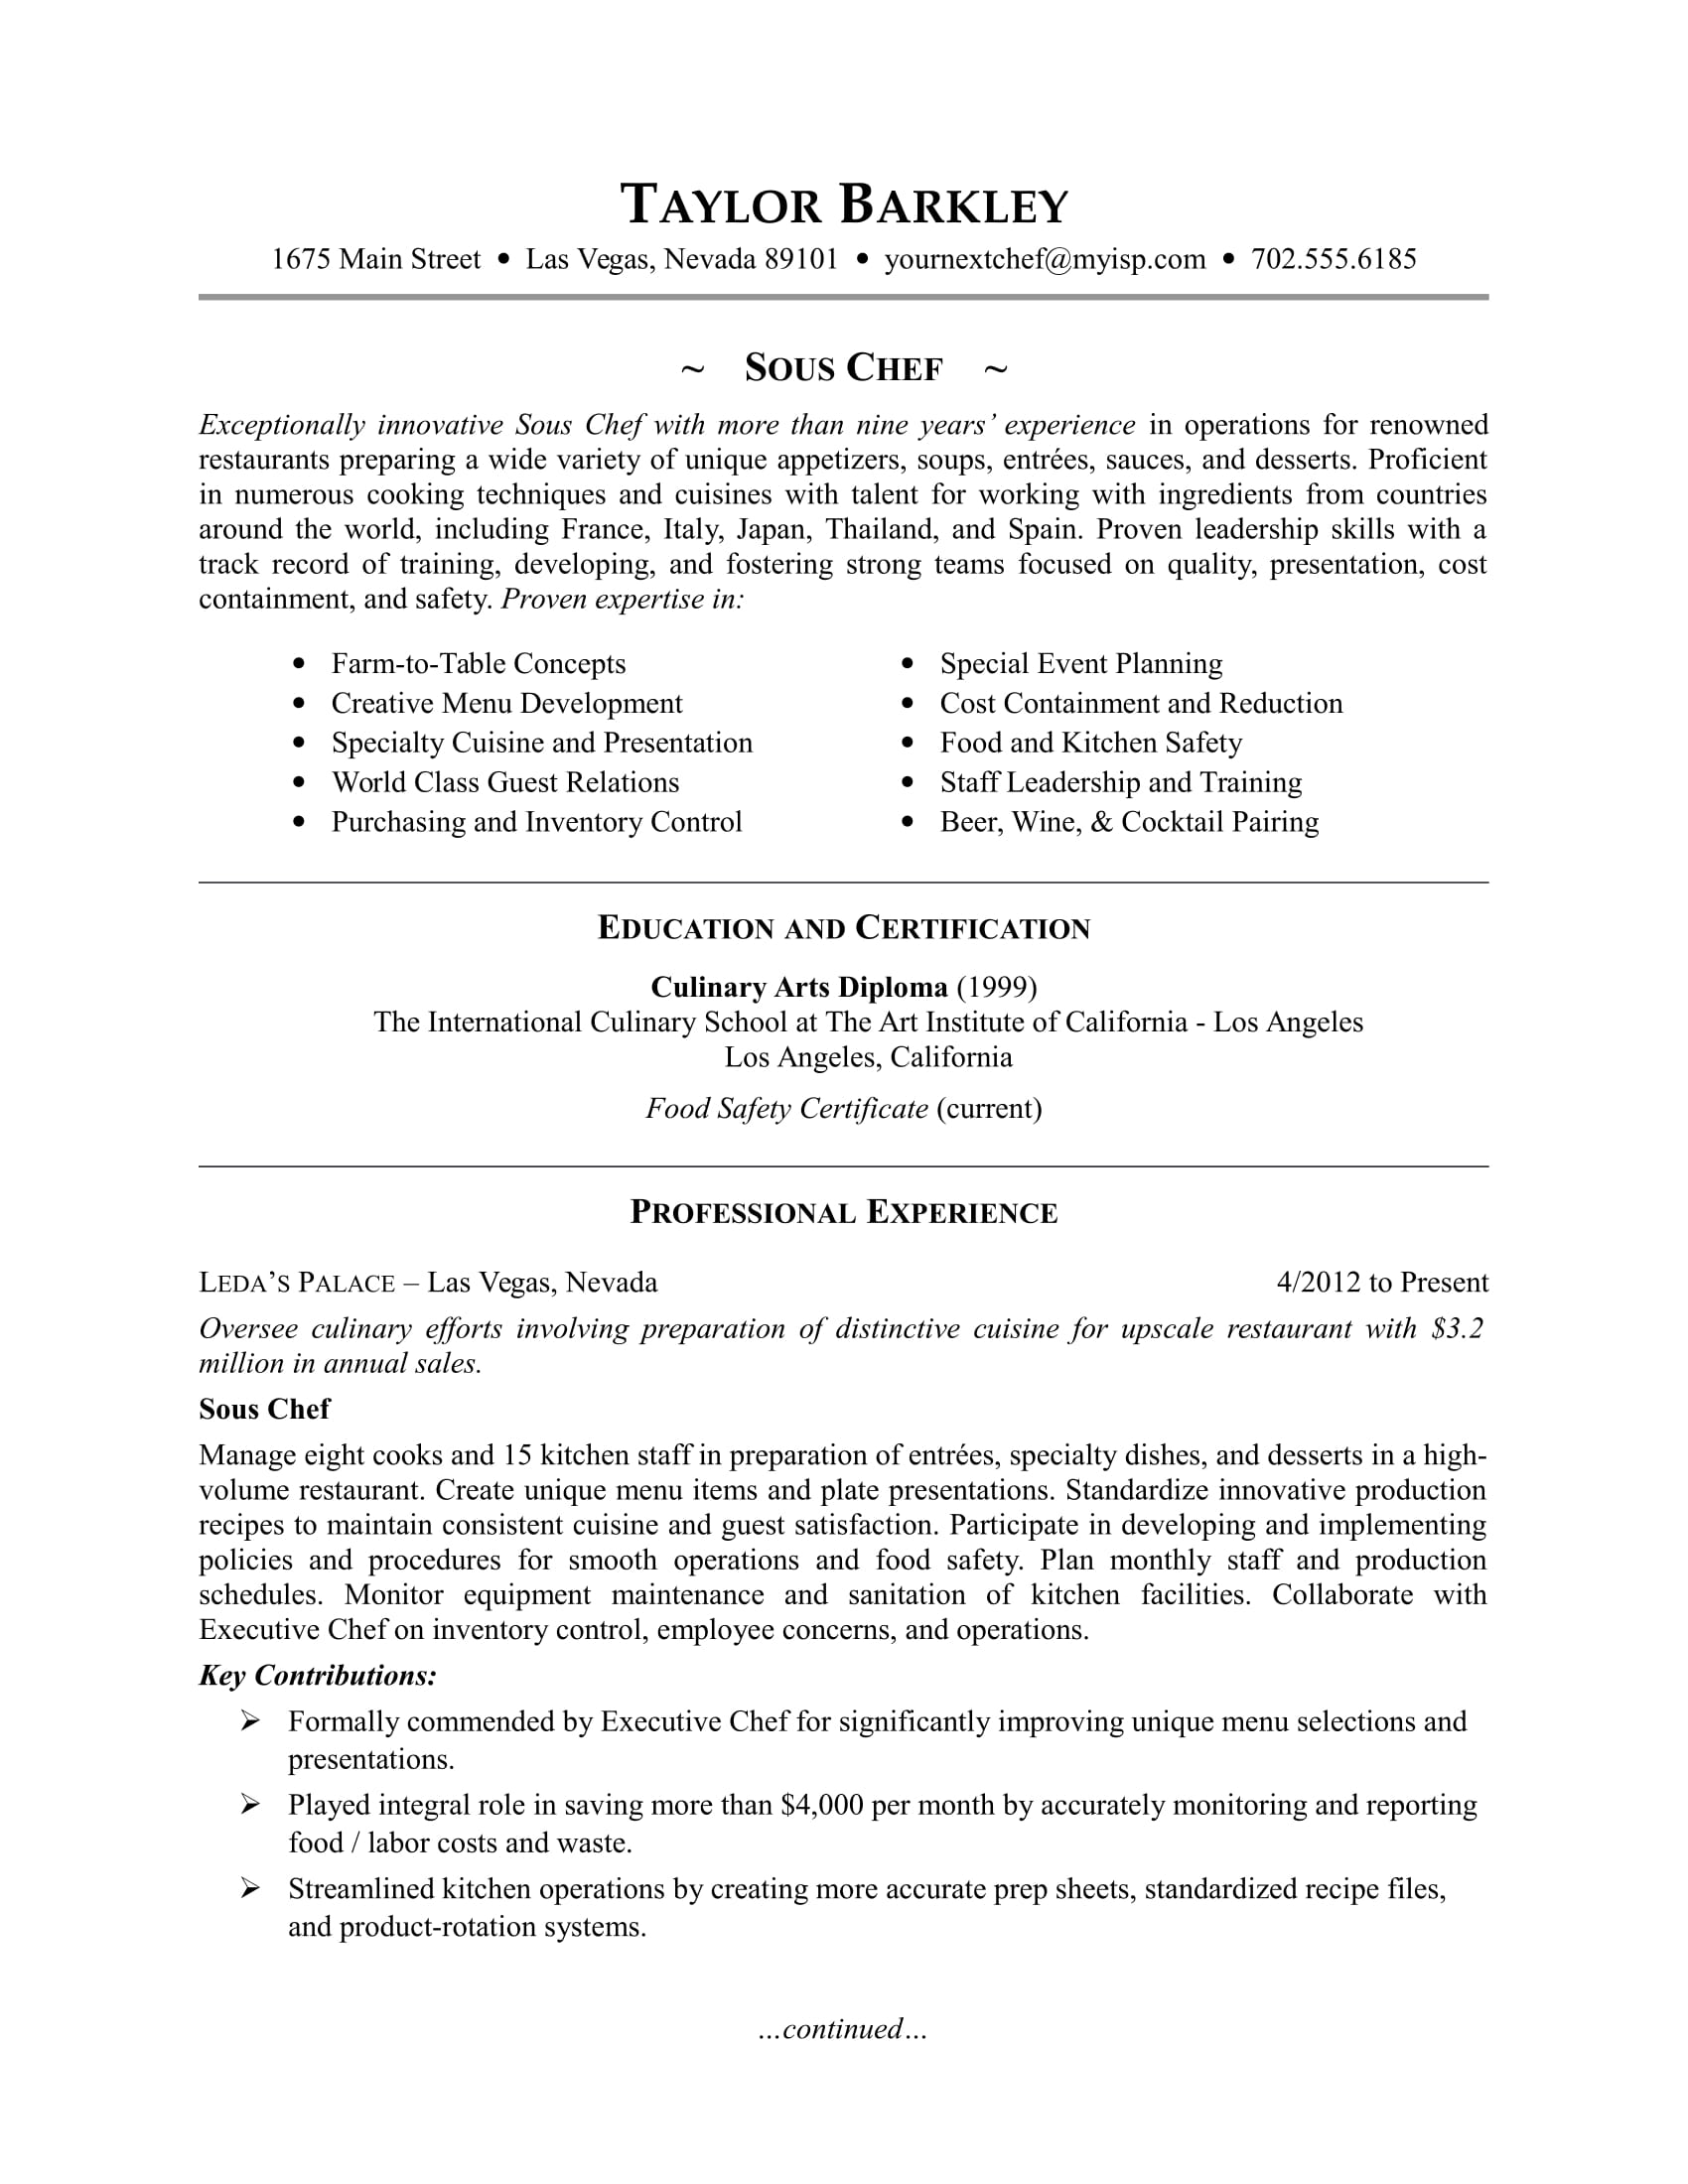 Sample Resume For A Sous Chef  Monster Resume Examples